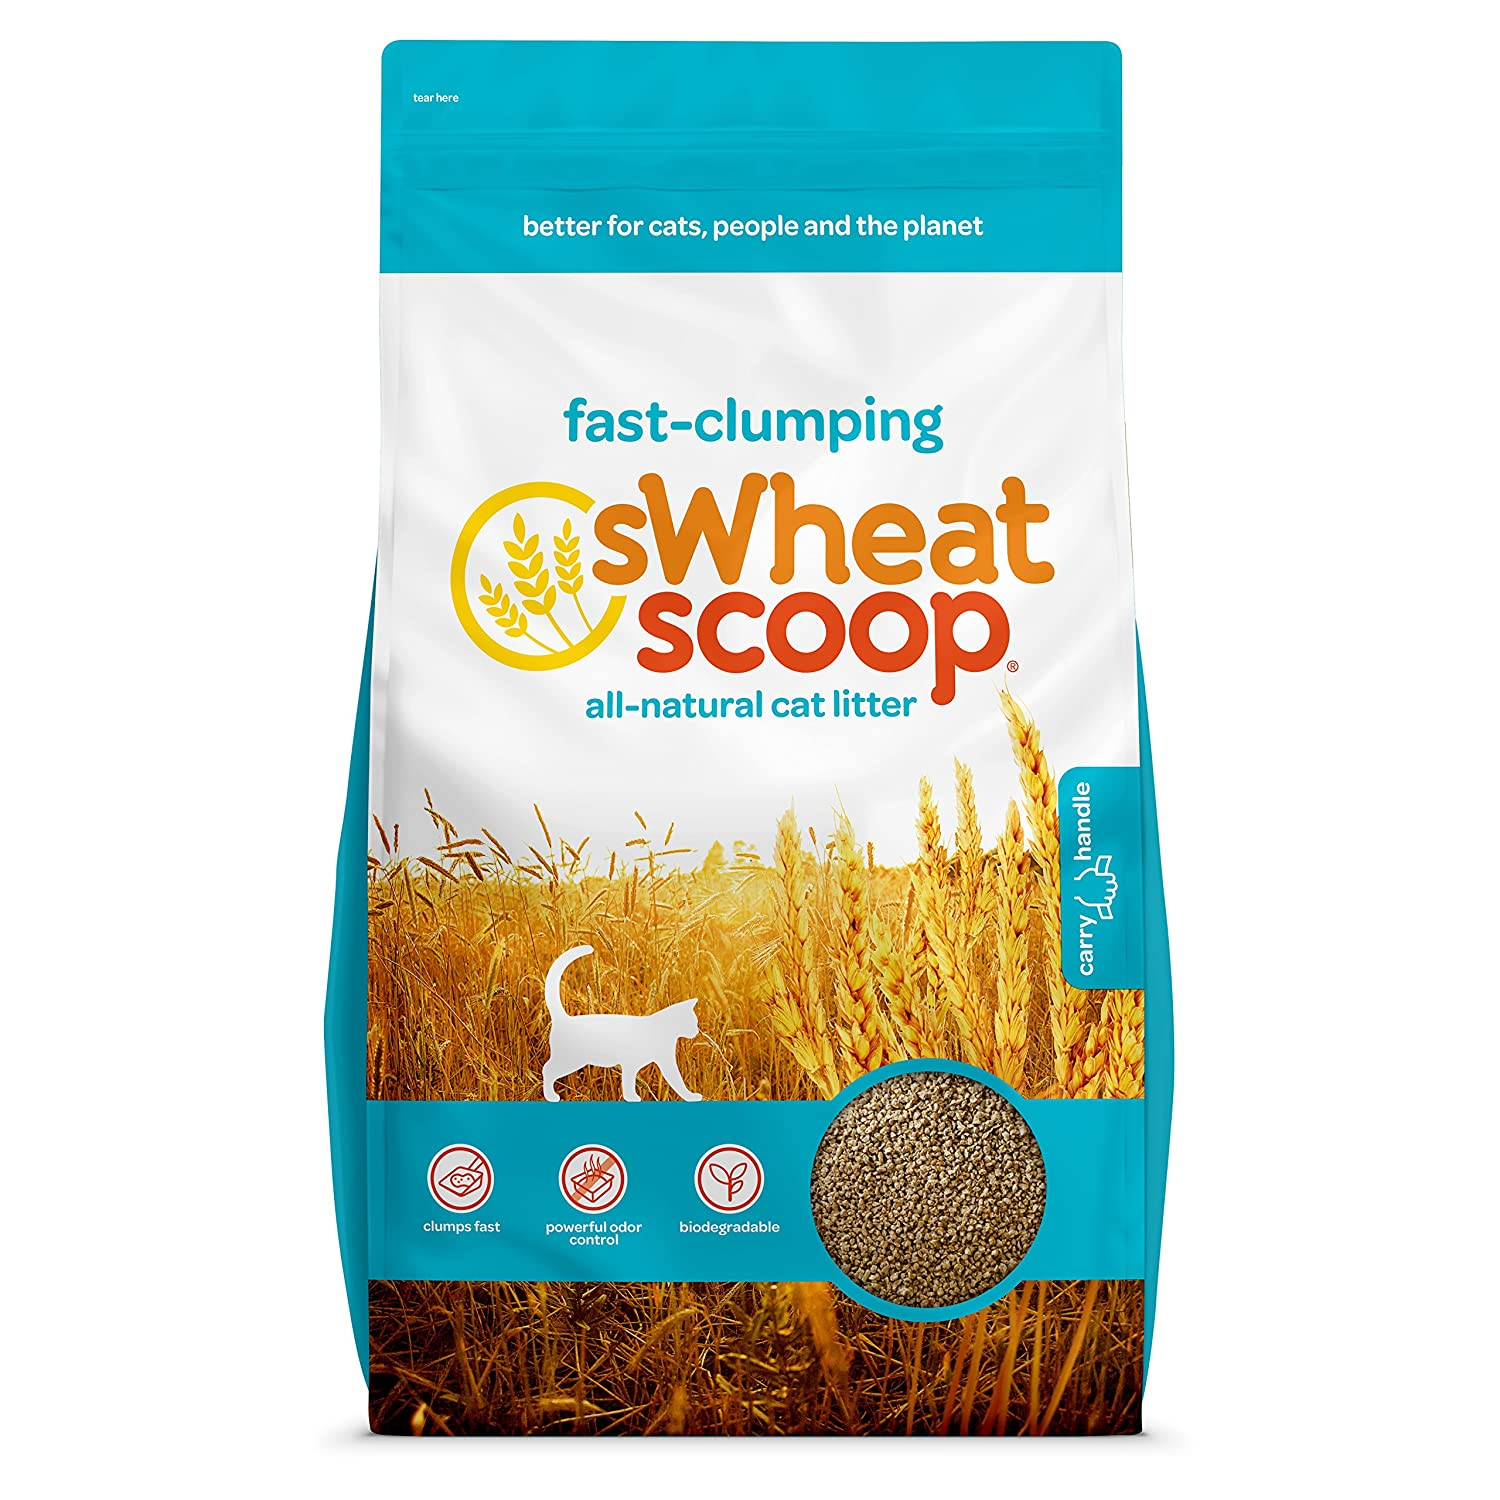 sWheat Scoop Fast-Clumping All-Natural Litter